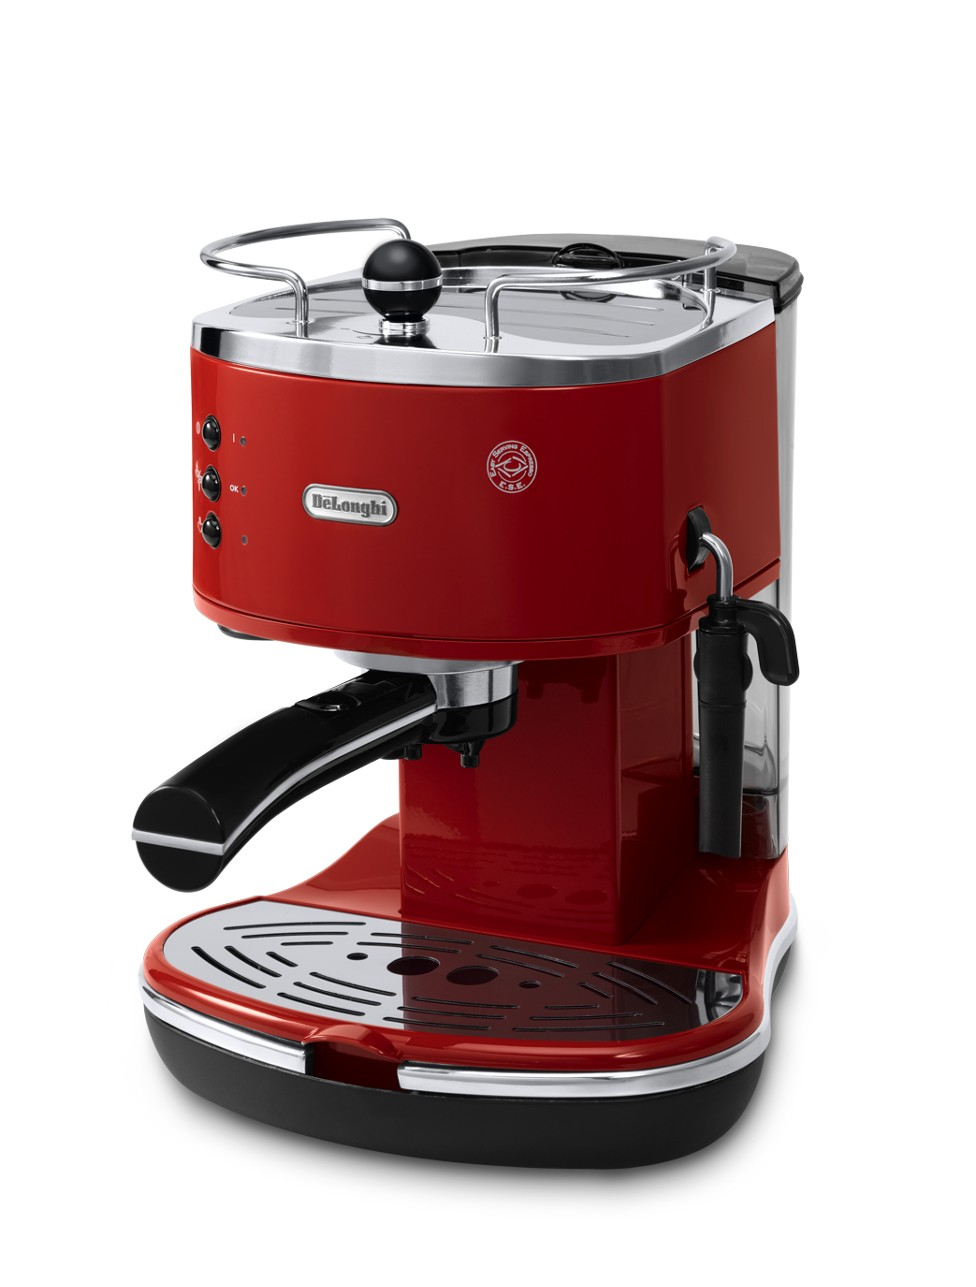 Delonghi Coffee Maker Eco310 : Delonghi ECO310.B Red Coffee Maker - review, compare prices, buy online